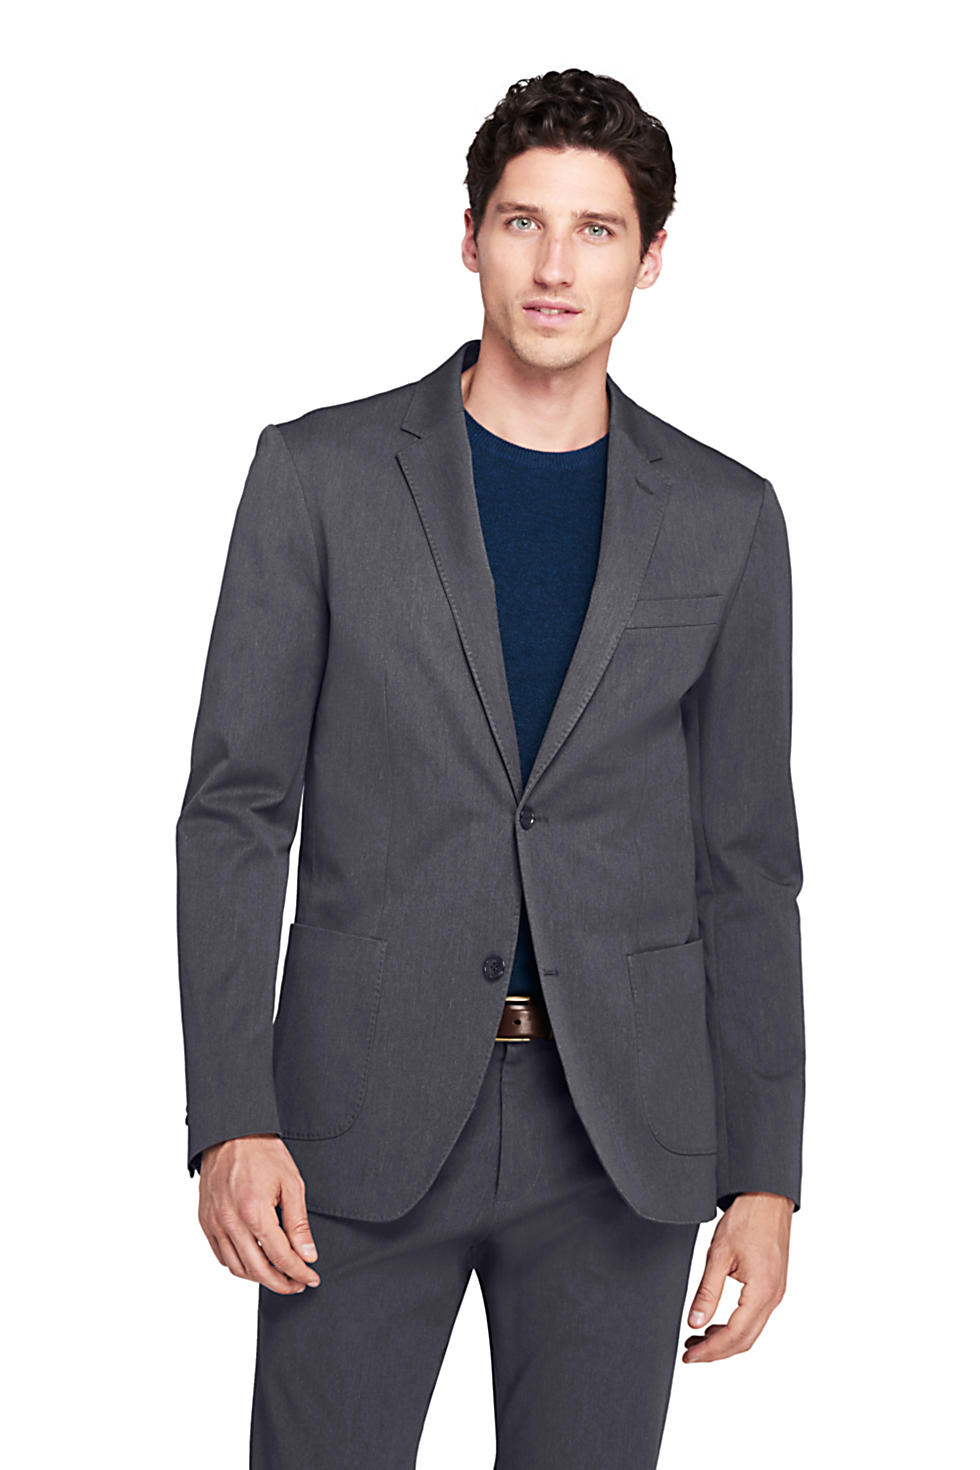 Lands' End Men's Tailored Fit Comfort-First Travel Blazer